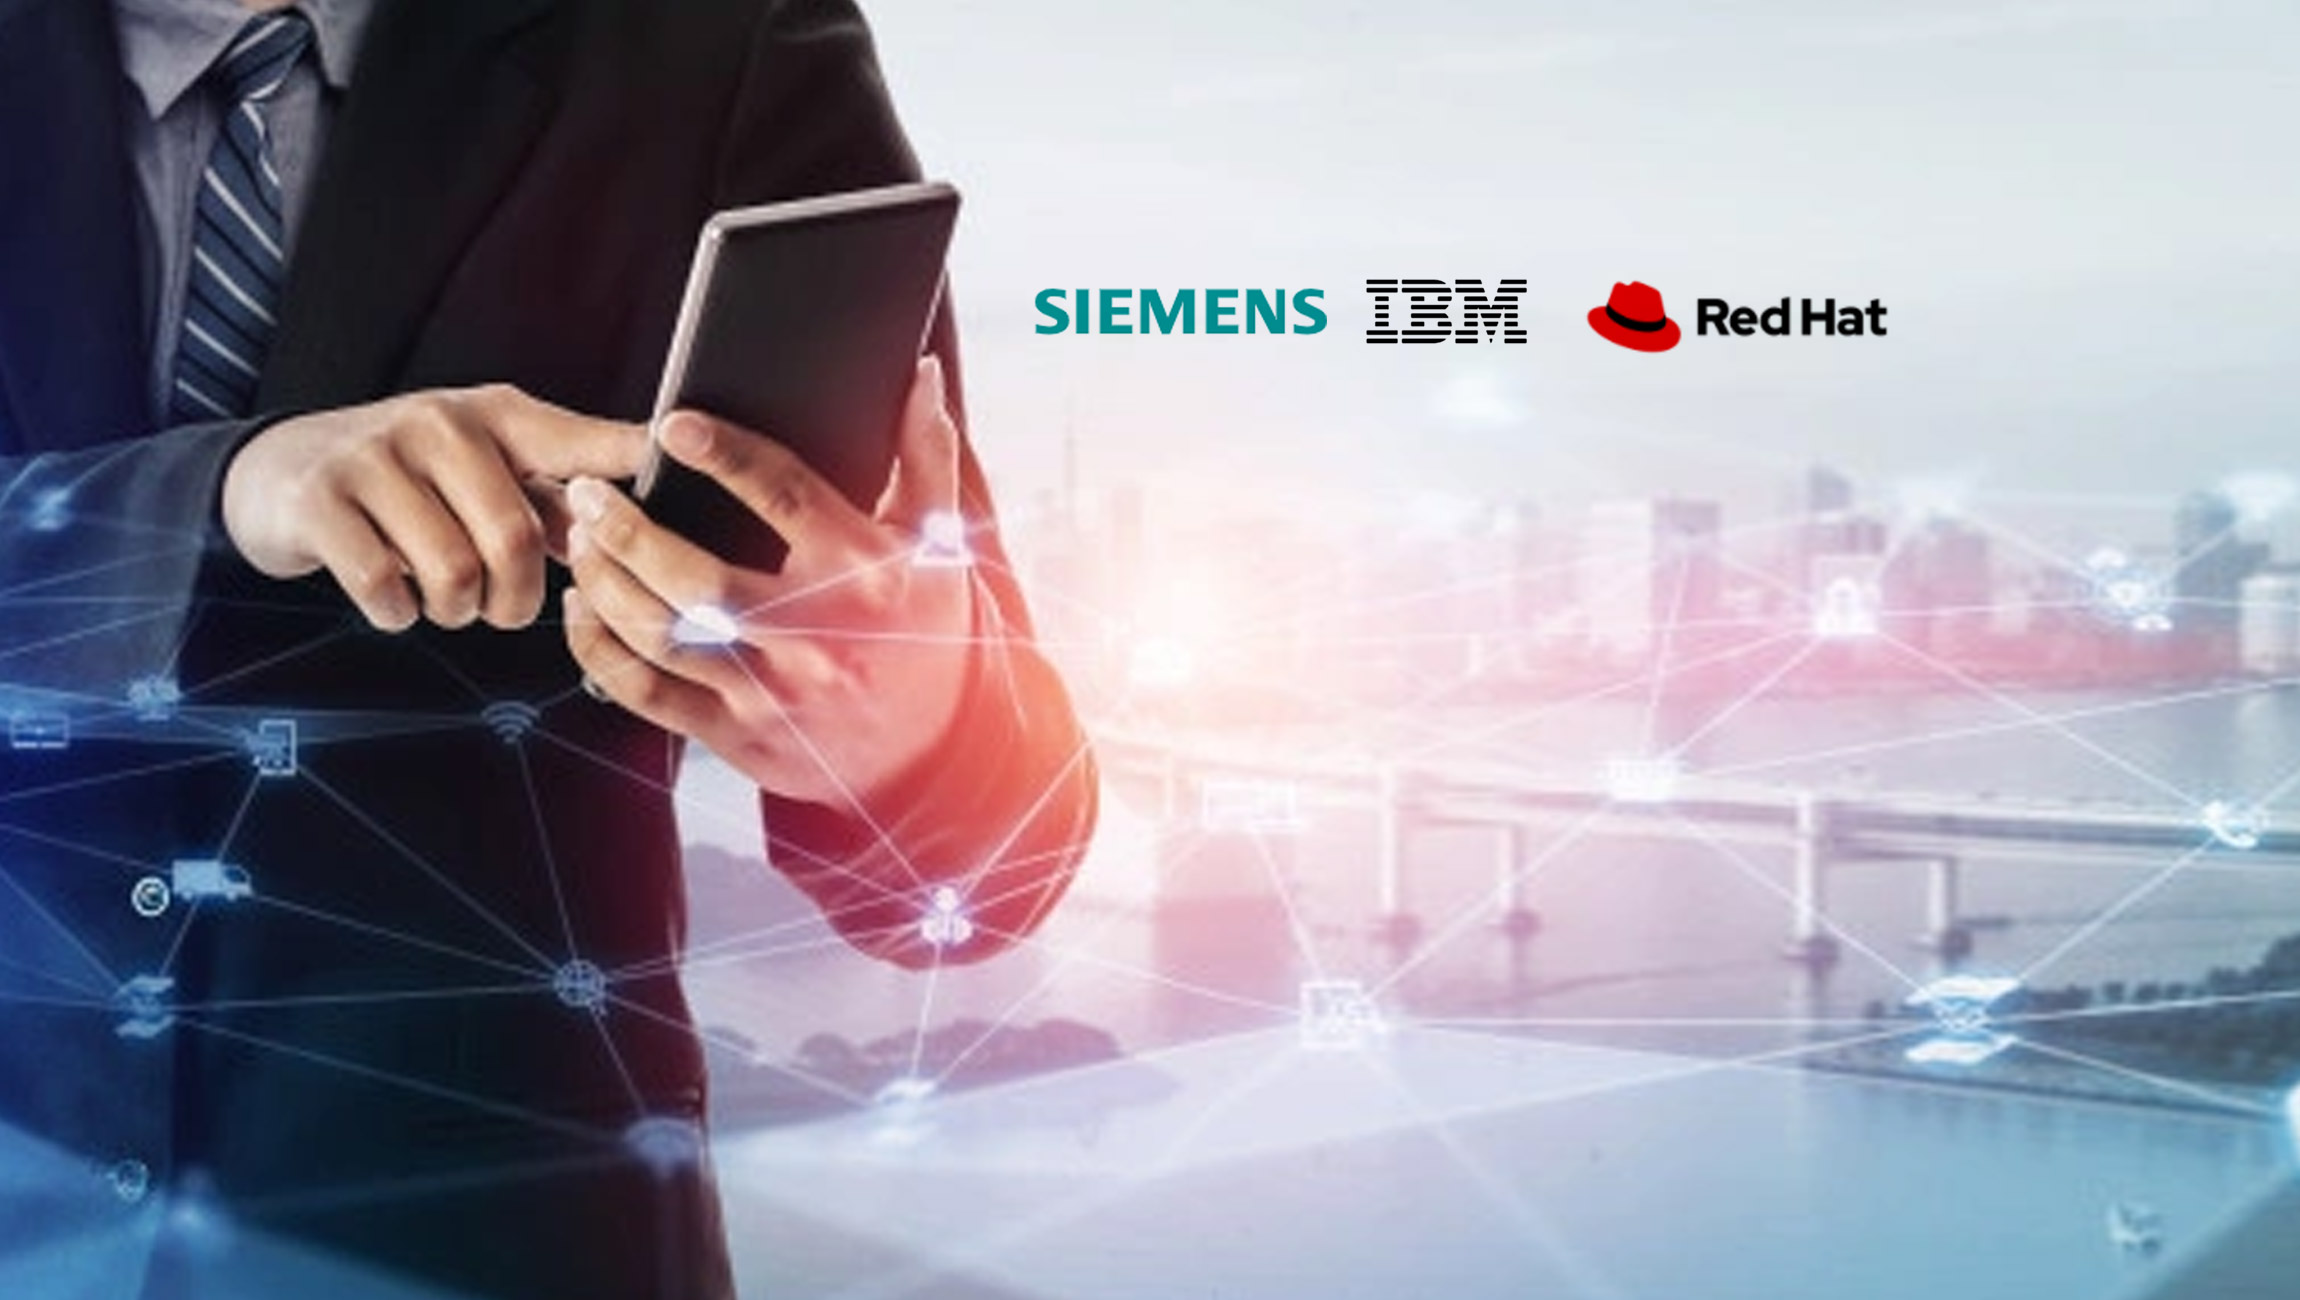 Siemens, IBM, Red Hat Launch Hybrid Cloud Initiative to Increase Real-time Value of Industrial IoT Data